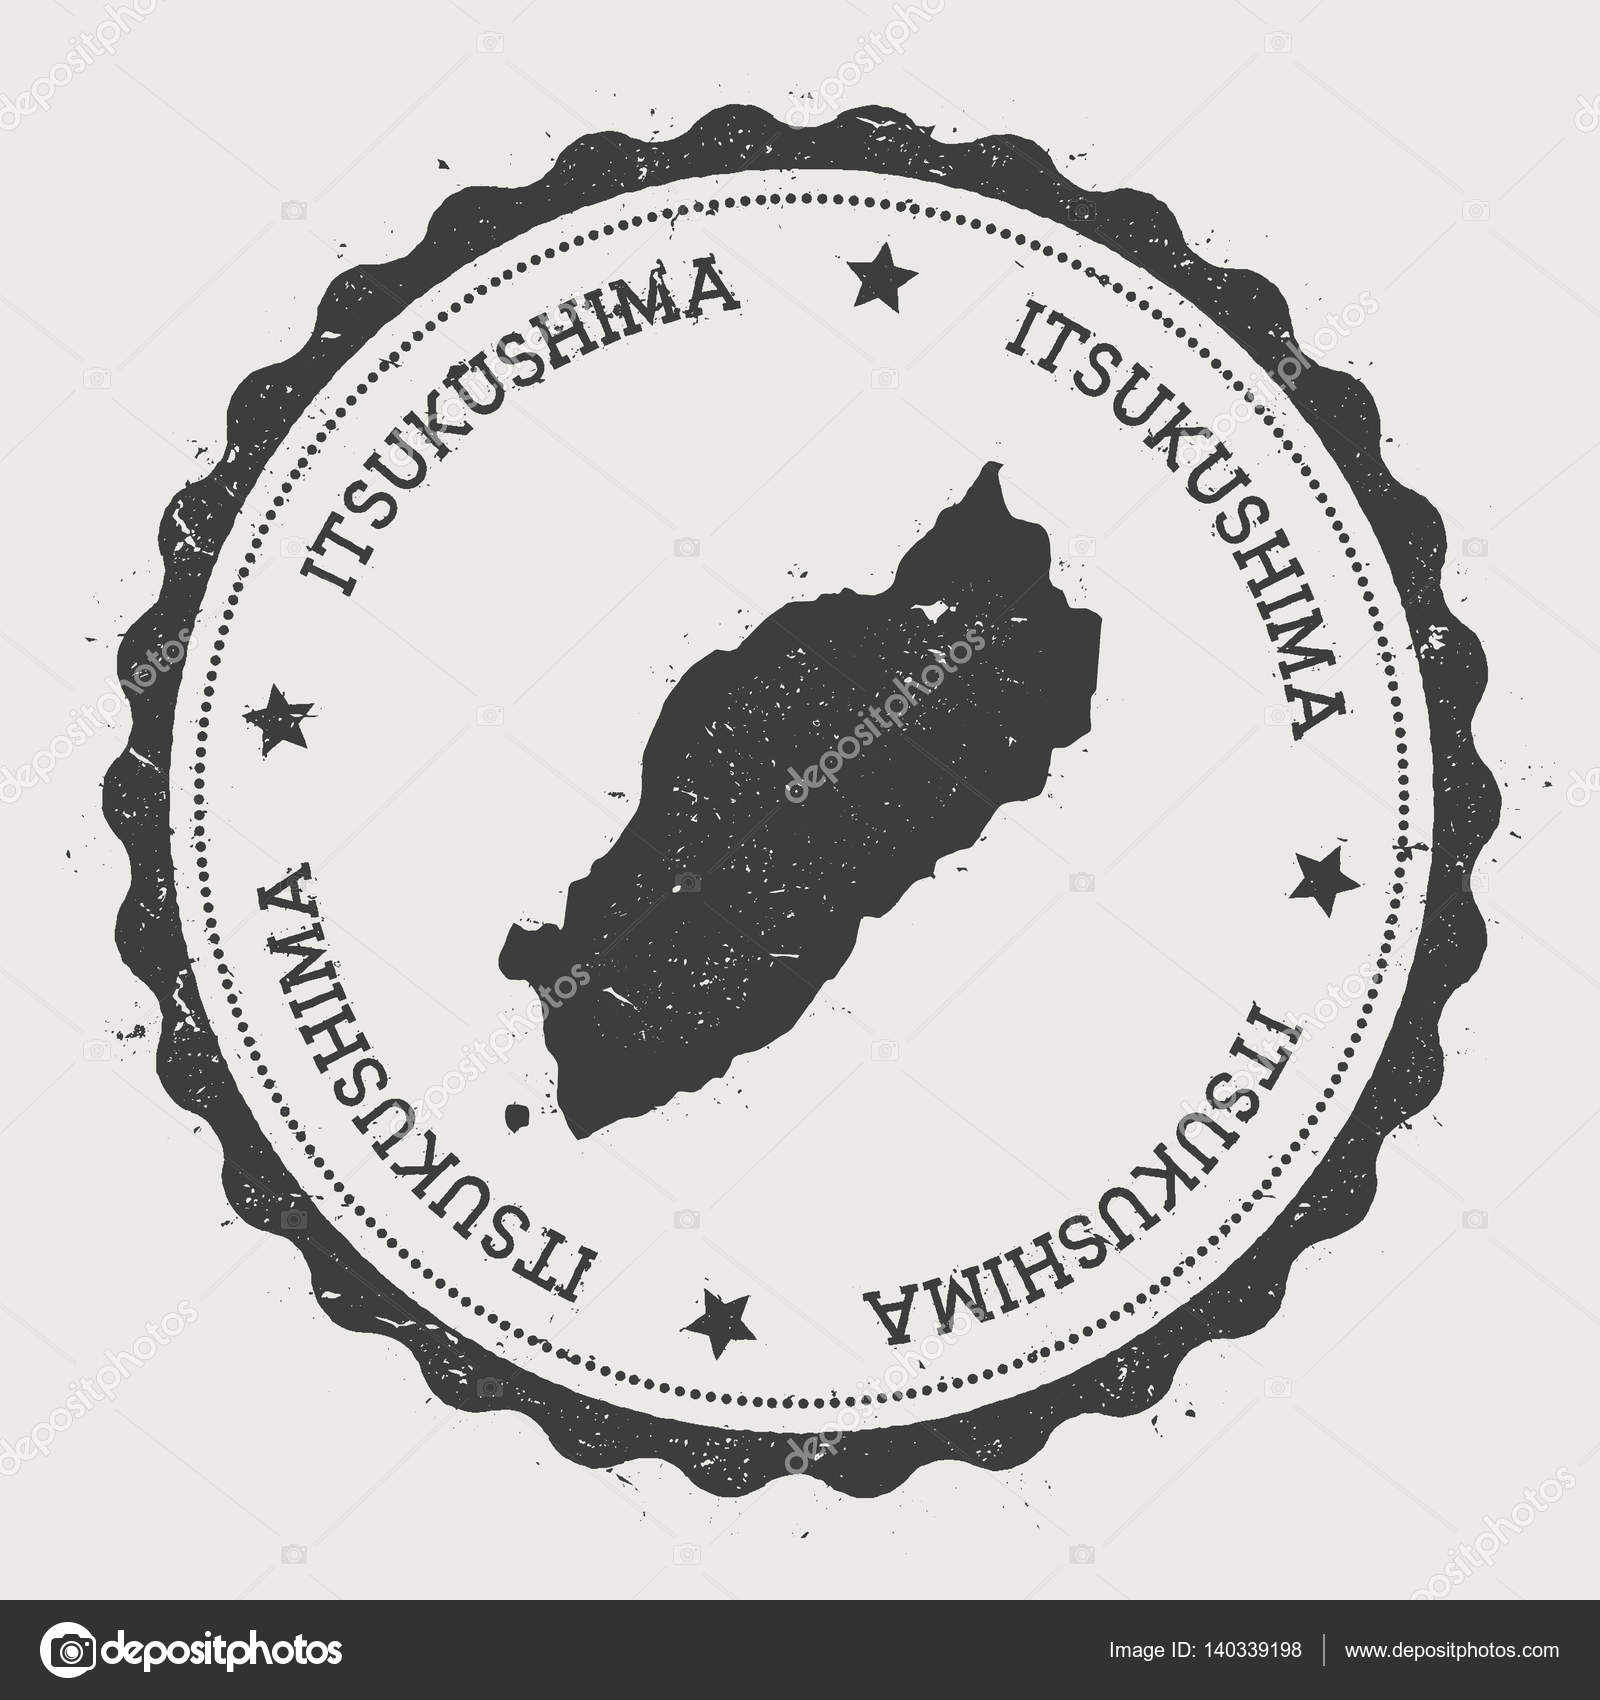 Itsukushima sticker Hipster round rubber stamp with island map